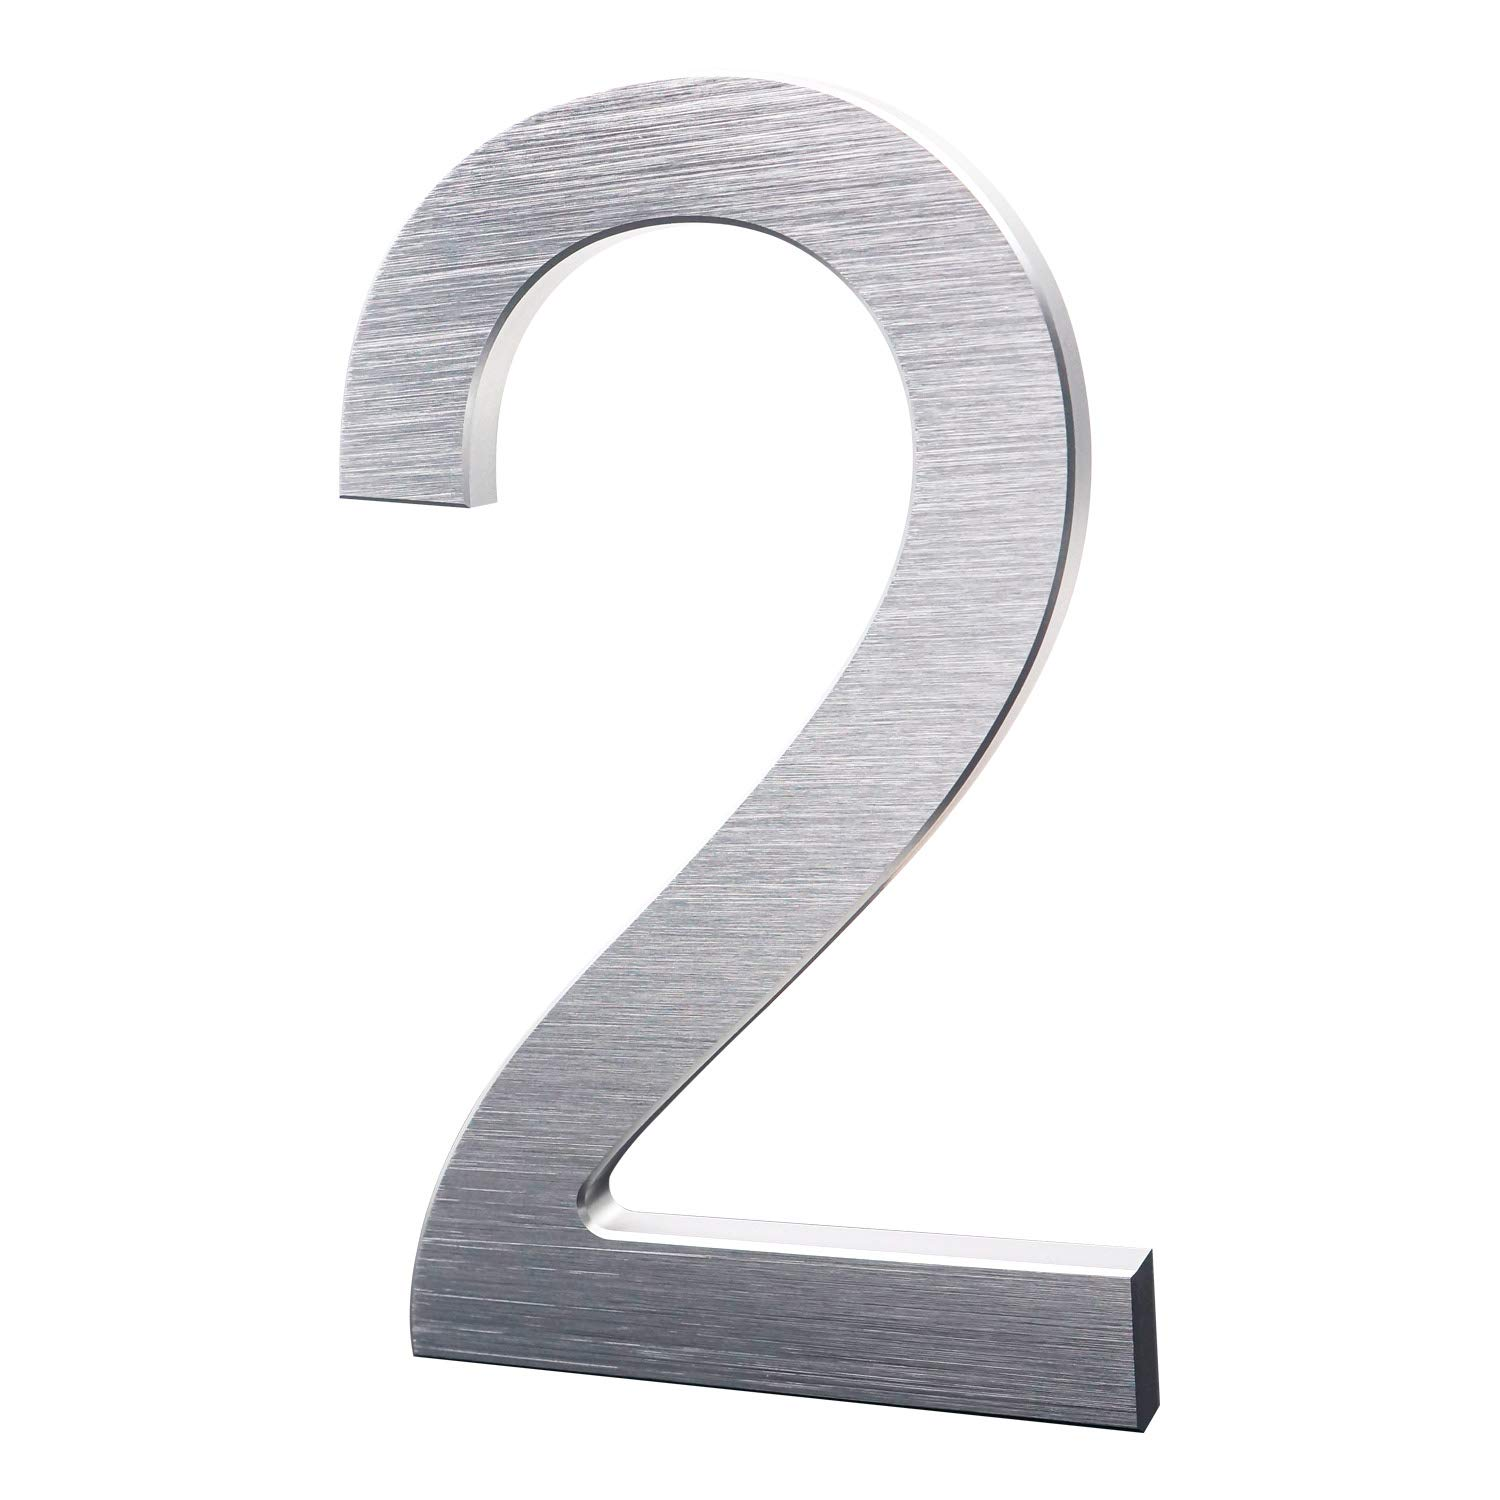 8 Inch Modern House Numbers- Premium Aluminum Floating Home Address Number withElegant & Sophisticated Brushed Finish, Silver, Number 2